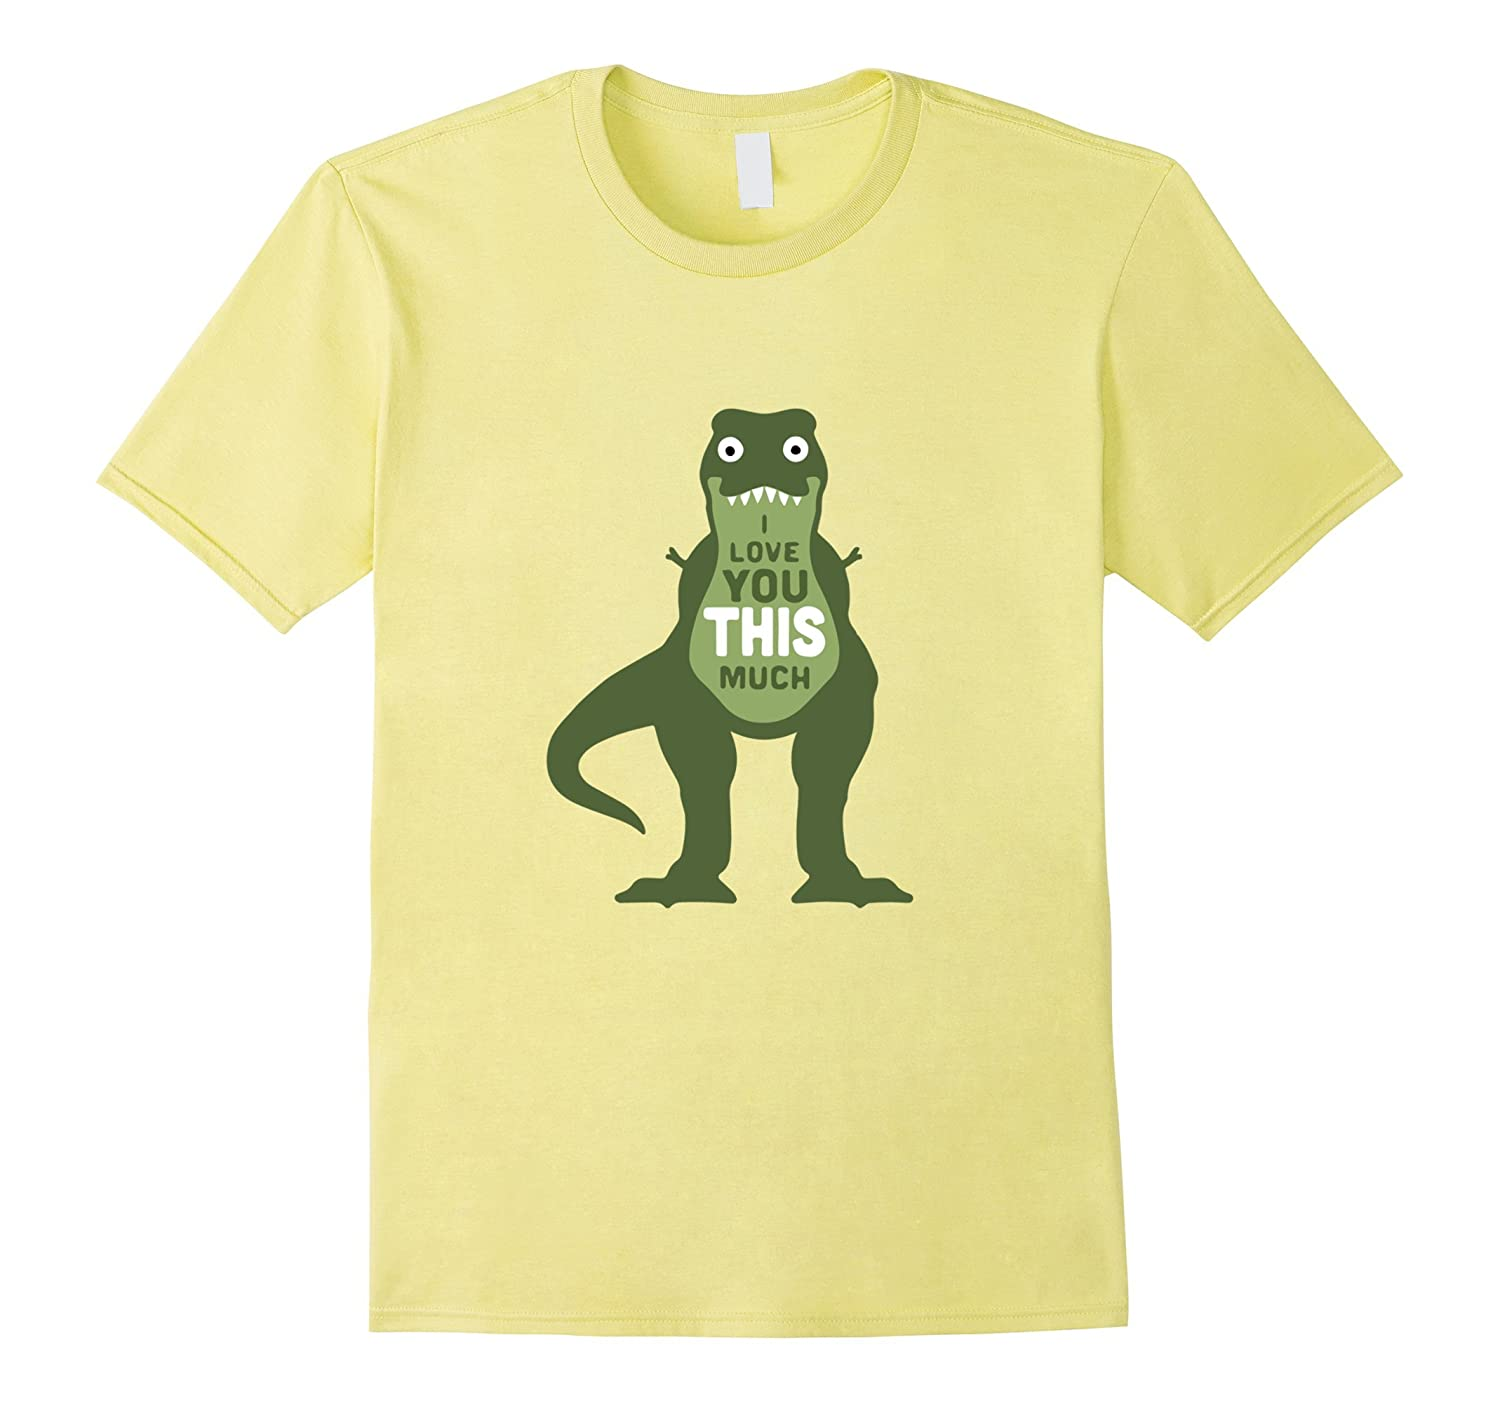 I Love You This Much Funny T Rex Dinosaur Kids Tee Shirt